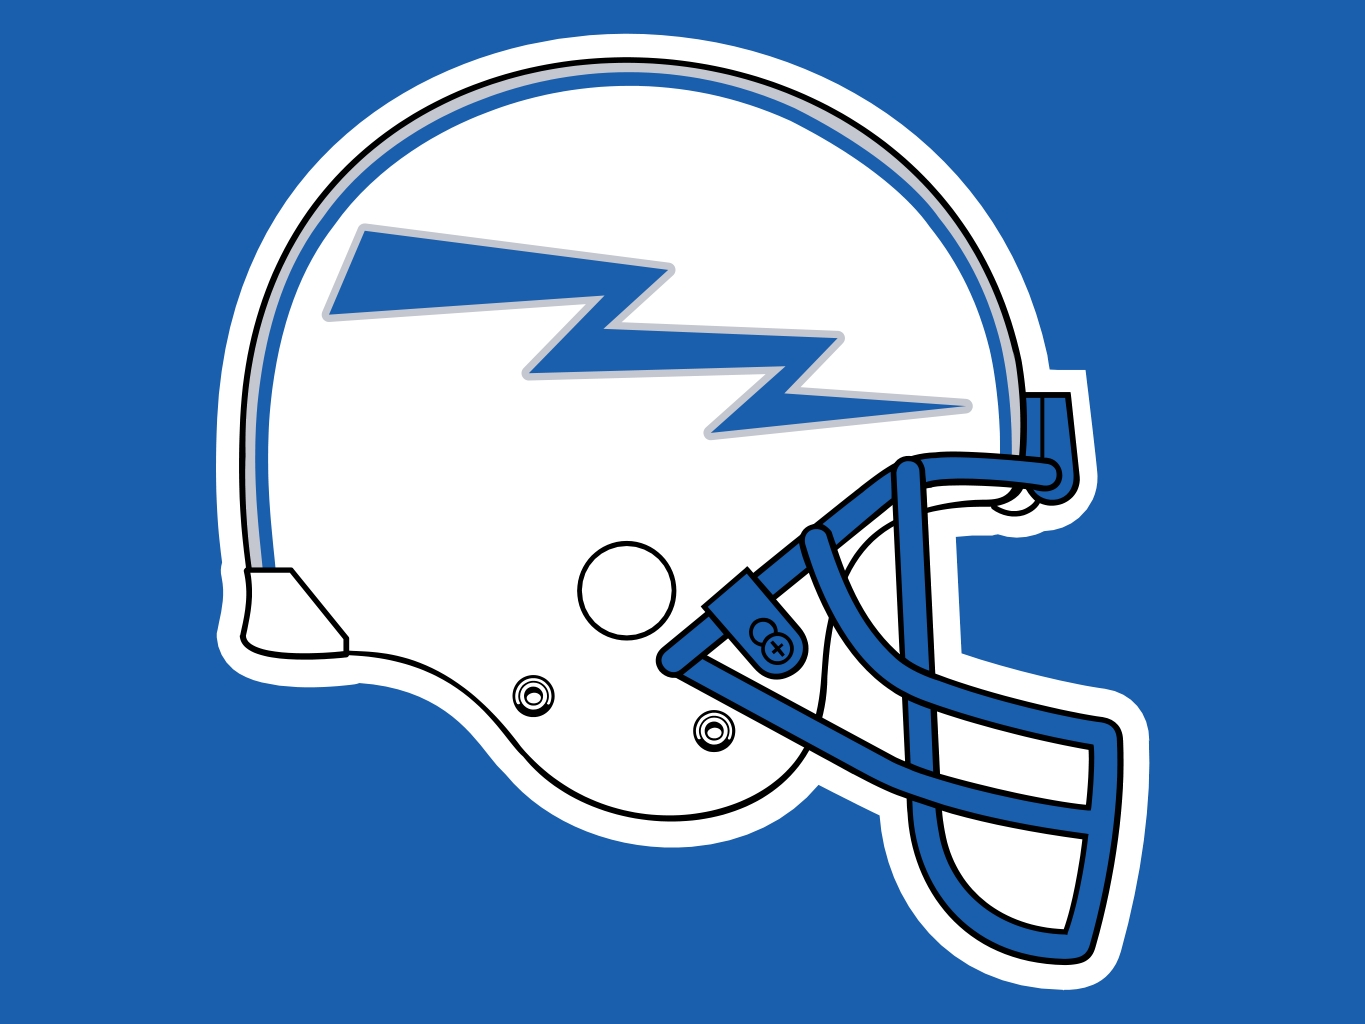 Air Force Falcons Helmet Logo free image.